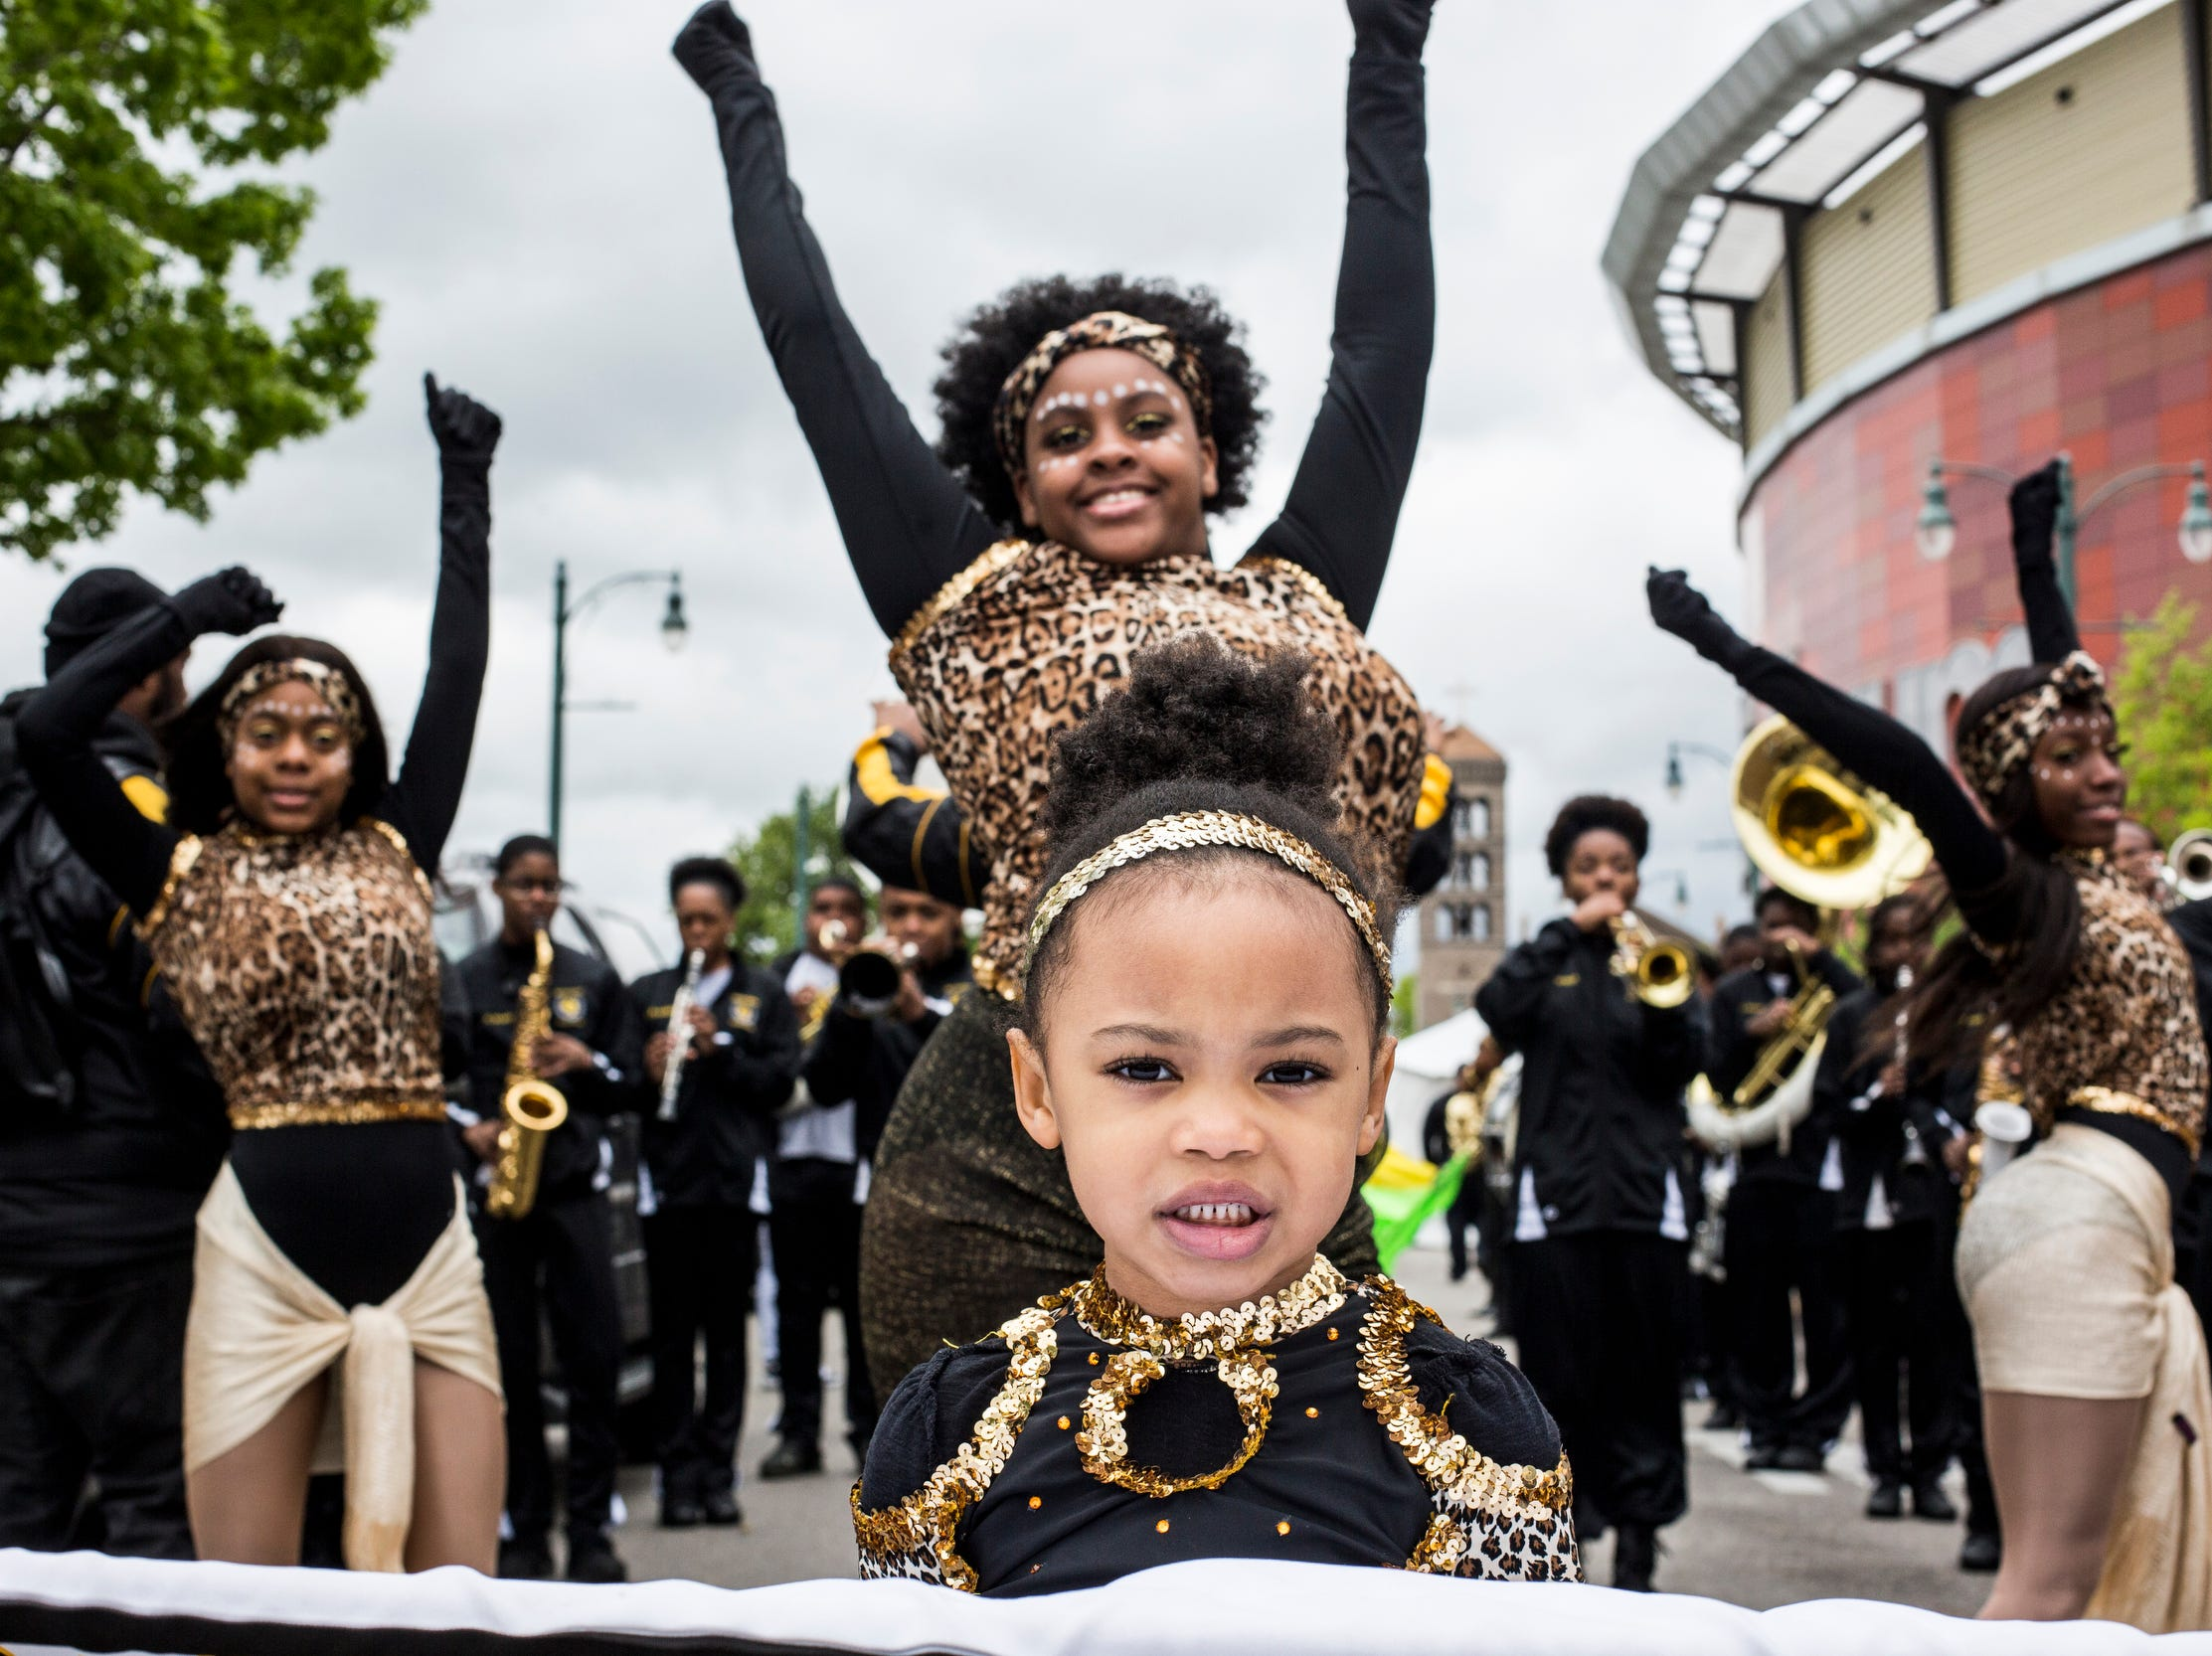 Sanaya Pearson, 4, lines up with the Memphis Business Academy marching band before the start of the Africa in April International Diversity Parade on Friday, April 19, 2019. The 33rd annual Africa in April Cultural Awareness Festival runs through April 21 at Robert Church Park.